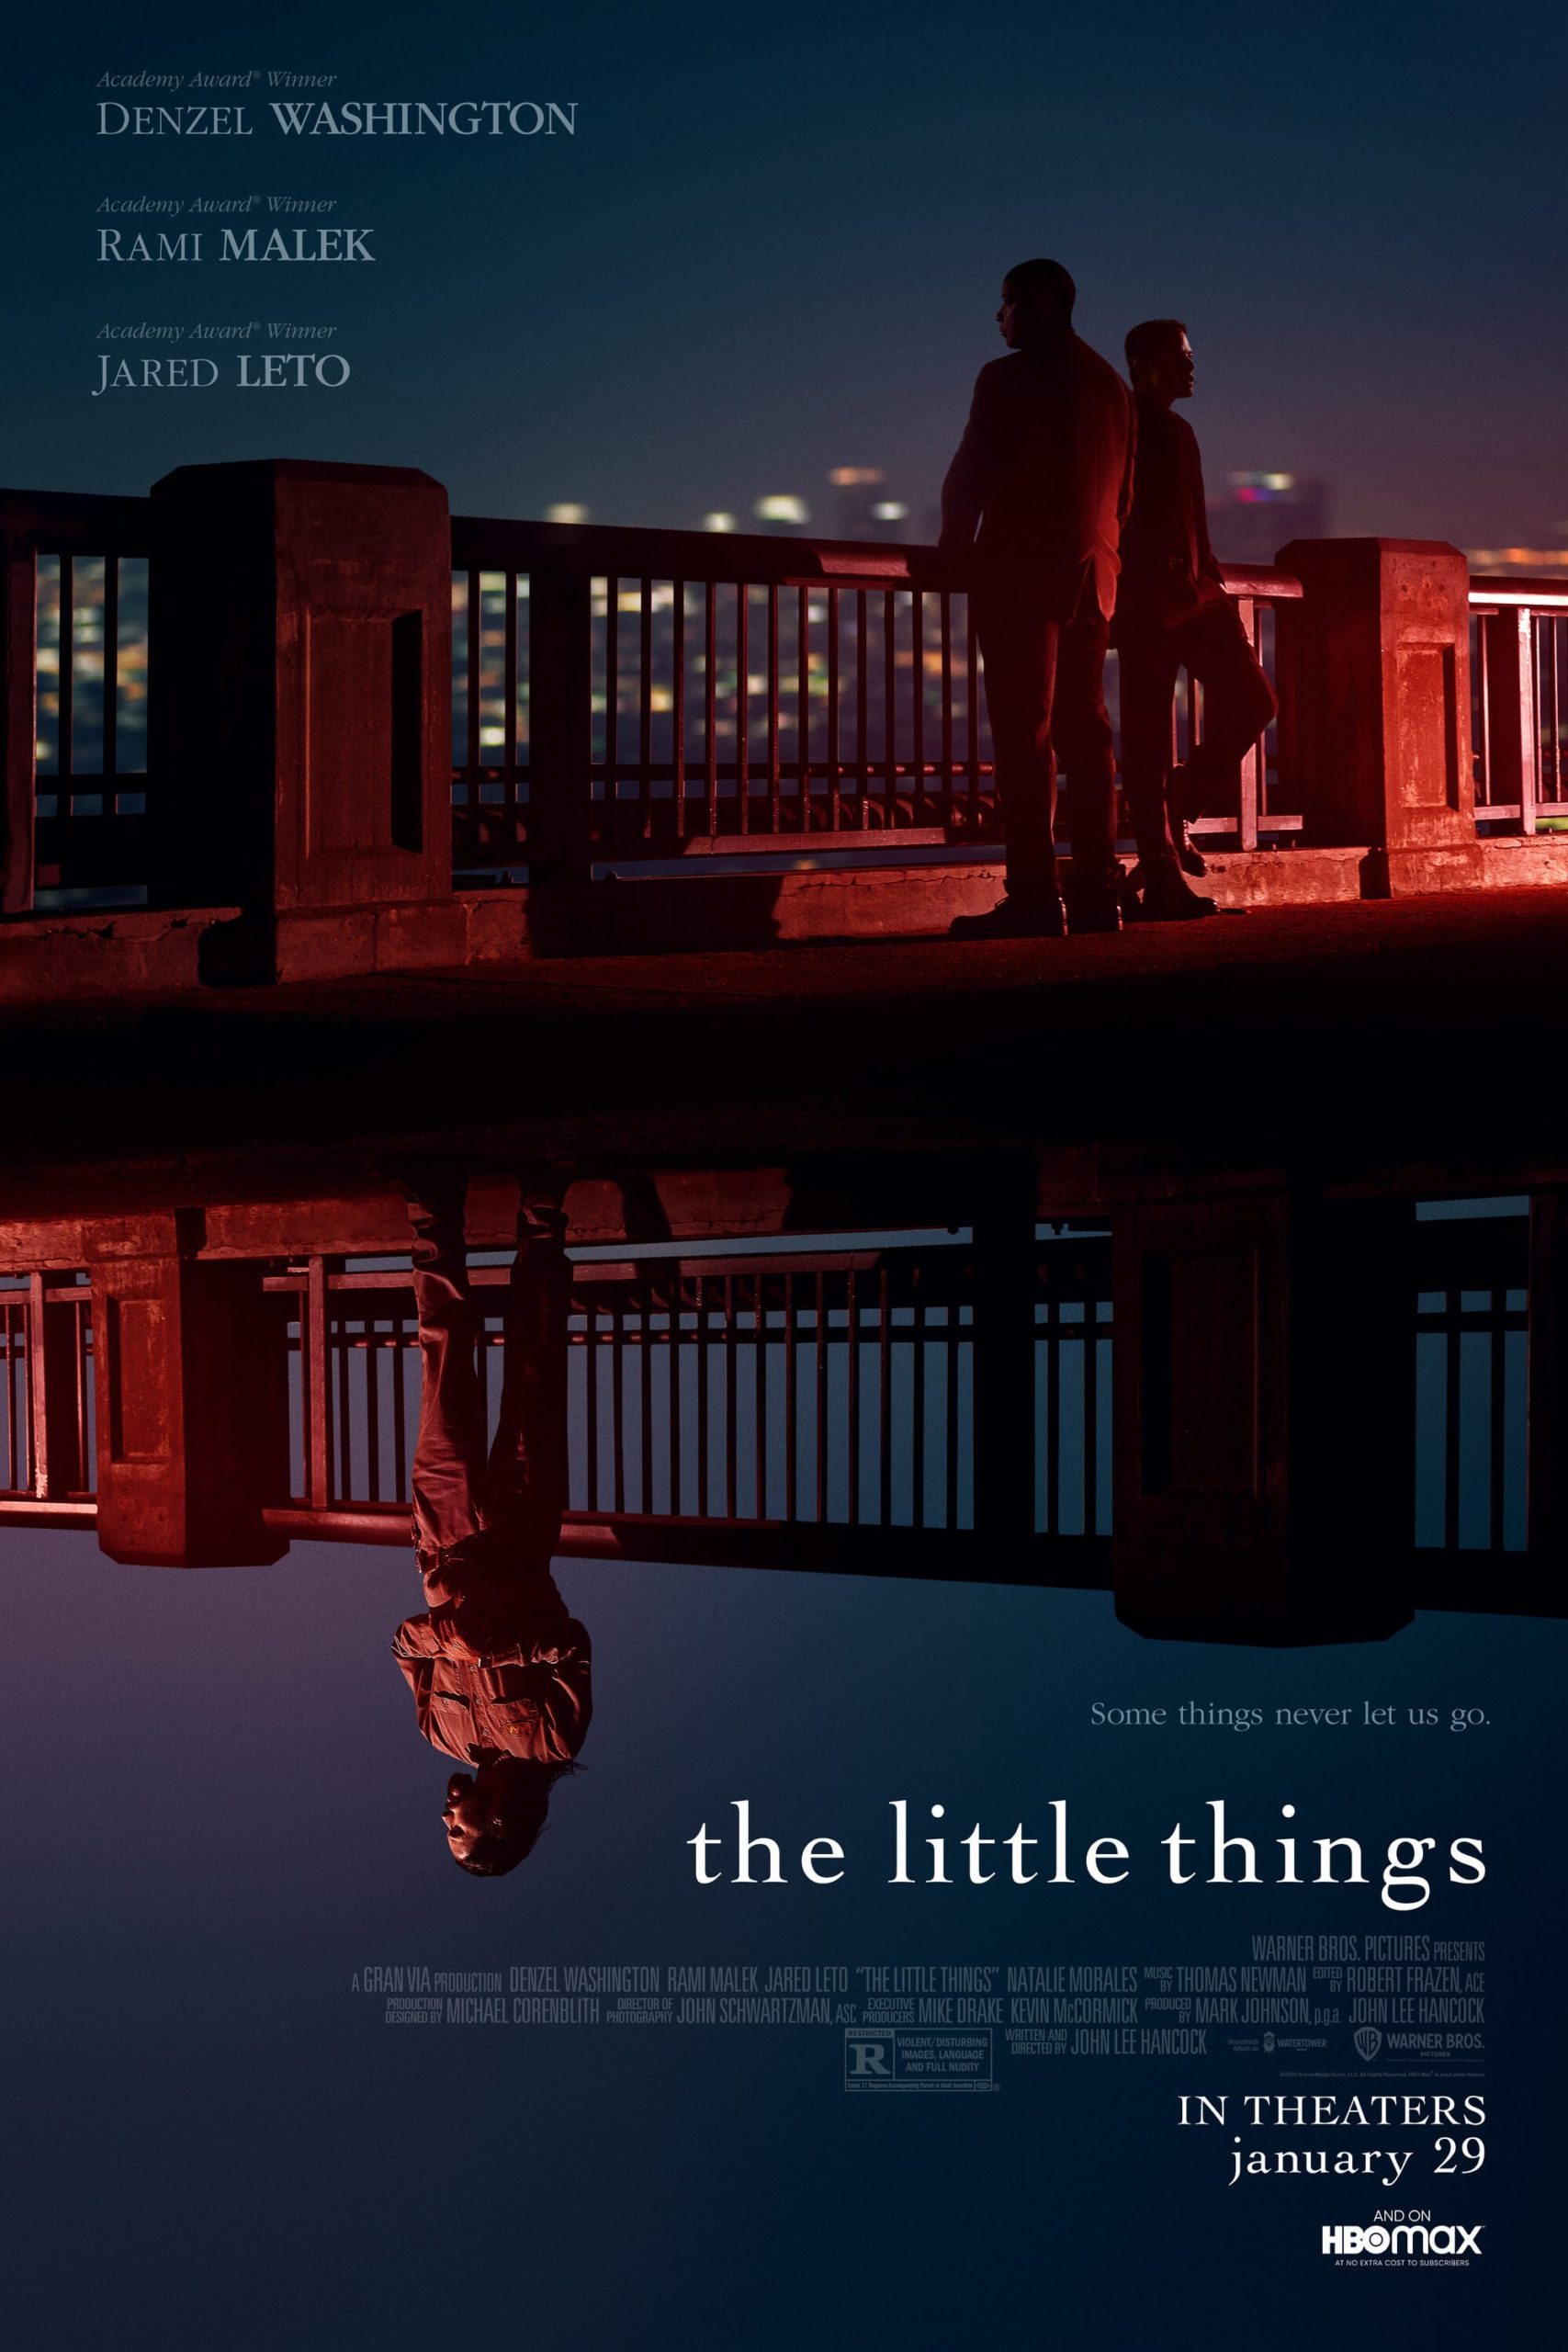 The LittleThings poster